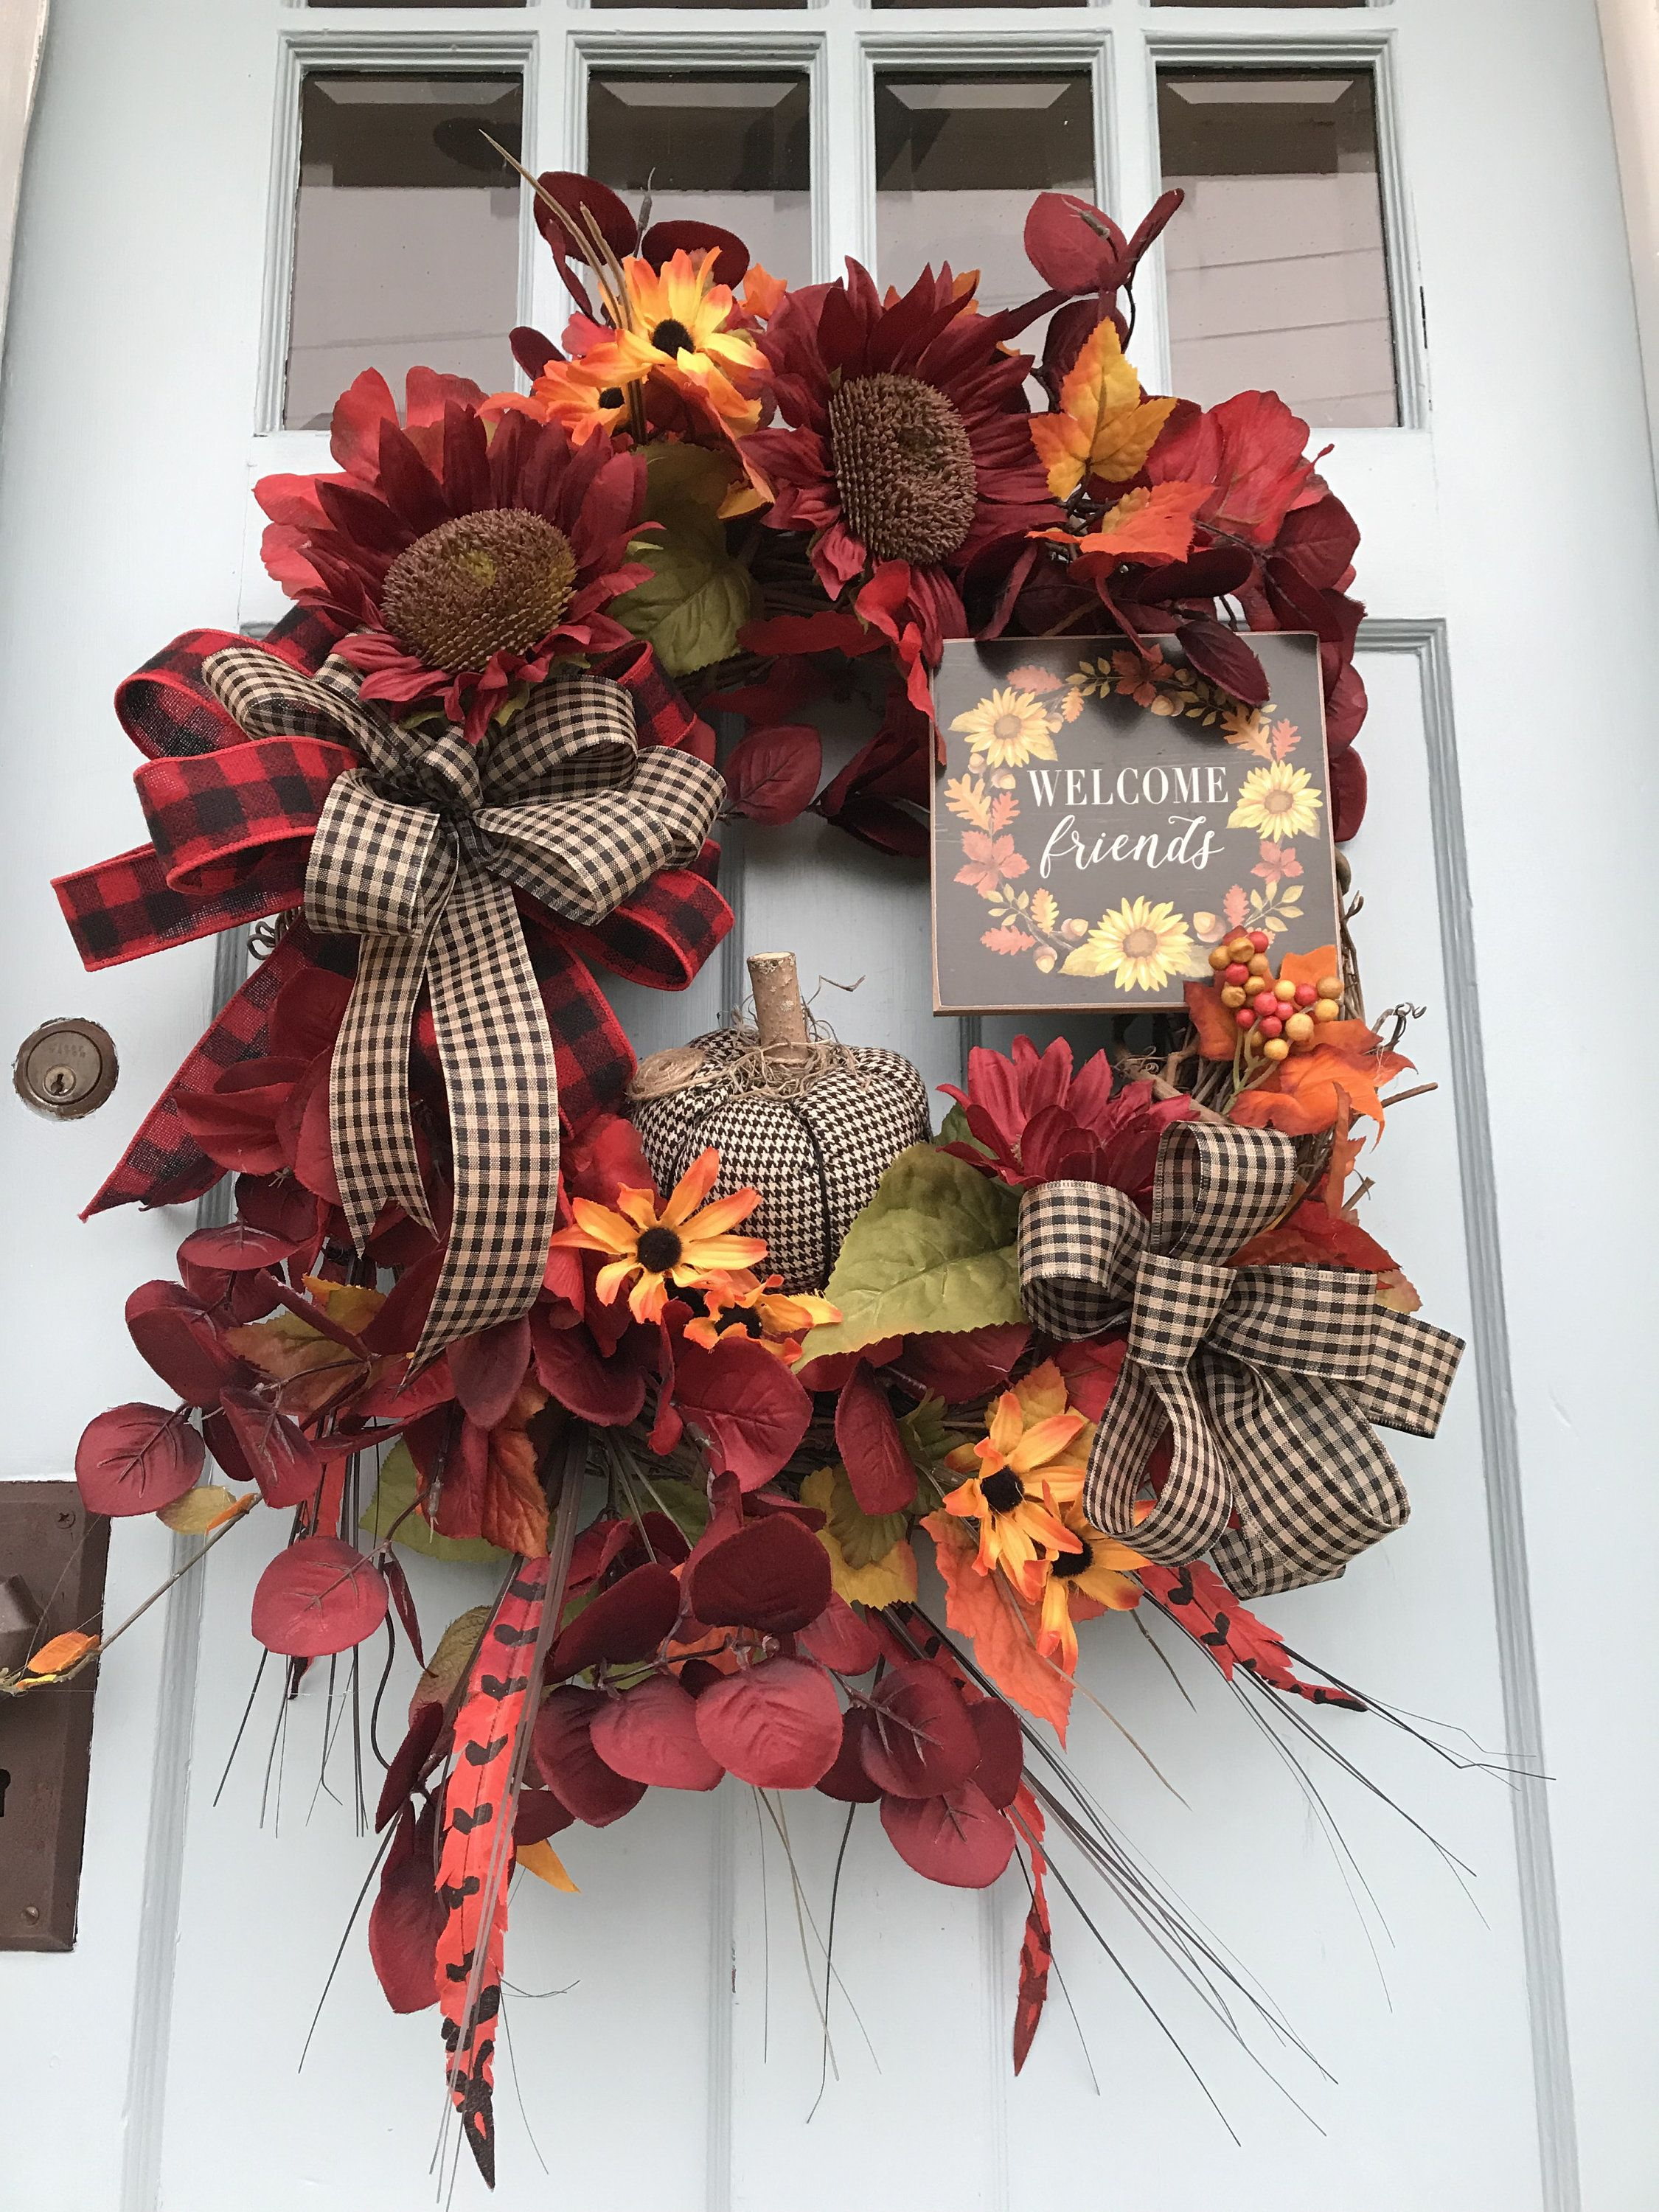 Red Sunflower Fall Wreath For Front Door Autumn Pumpkin Floral Grapevine Wreath For Door Friends Wreath For Front Door Pumpkin Wreath Fall Wreath Fall Thanksgiving Wreaths Wreaths For Front Door